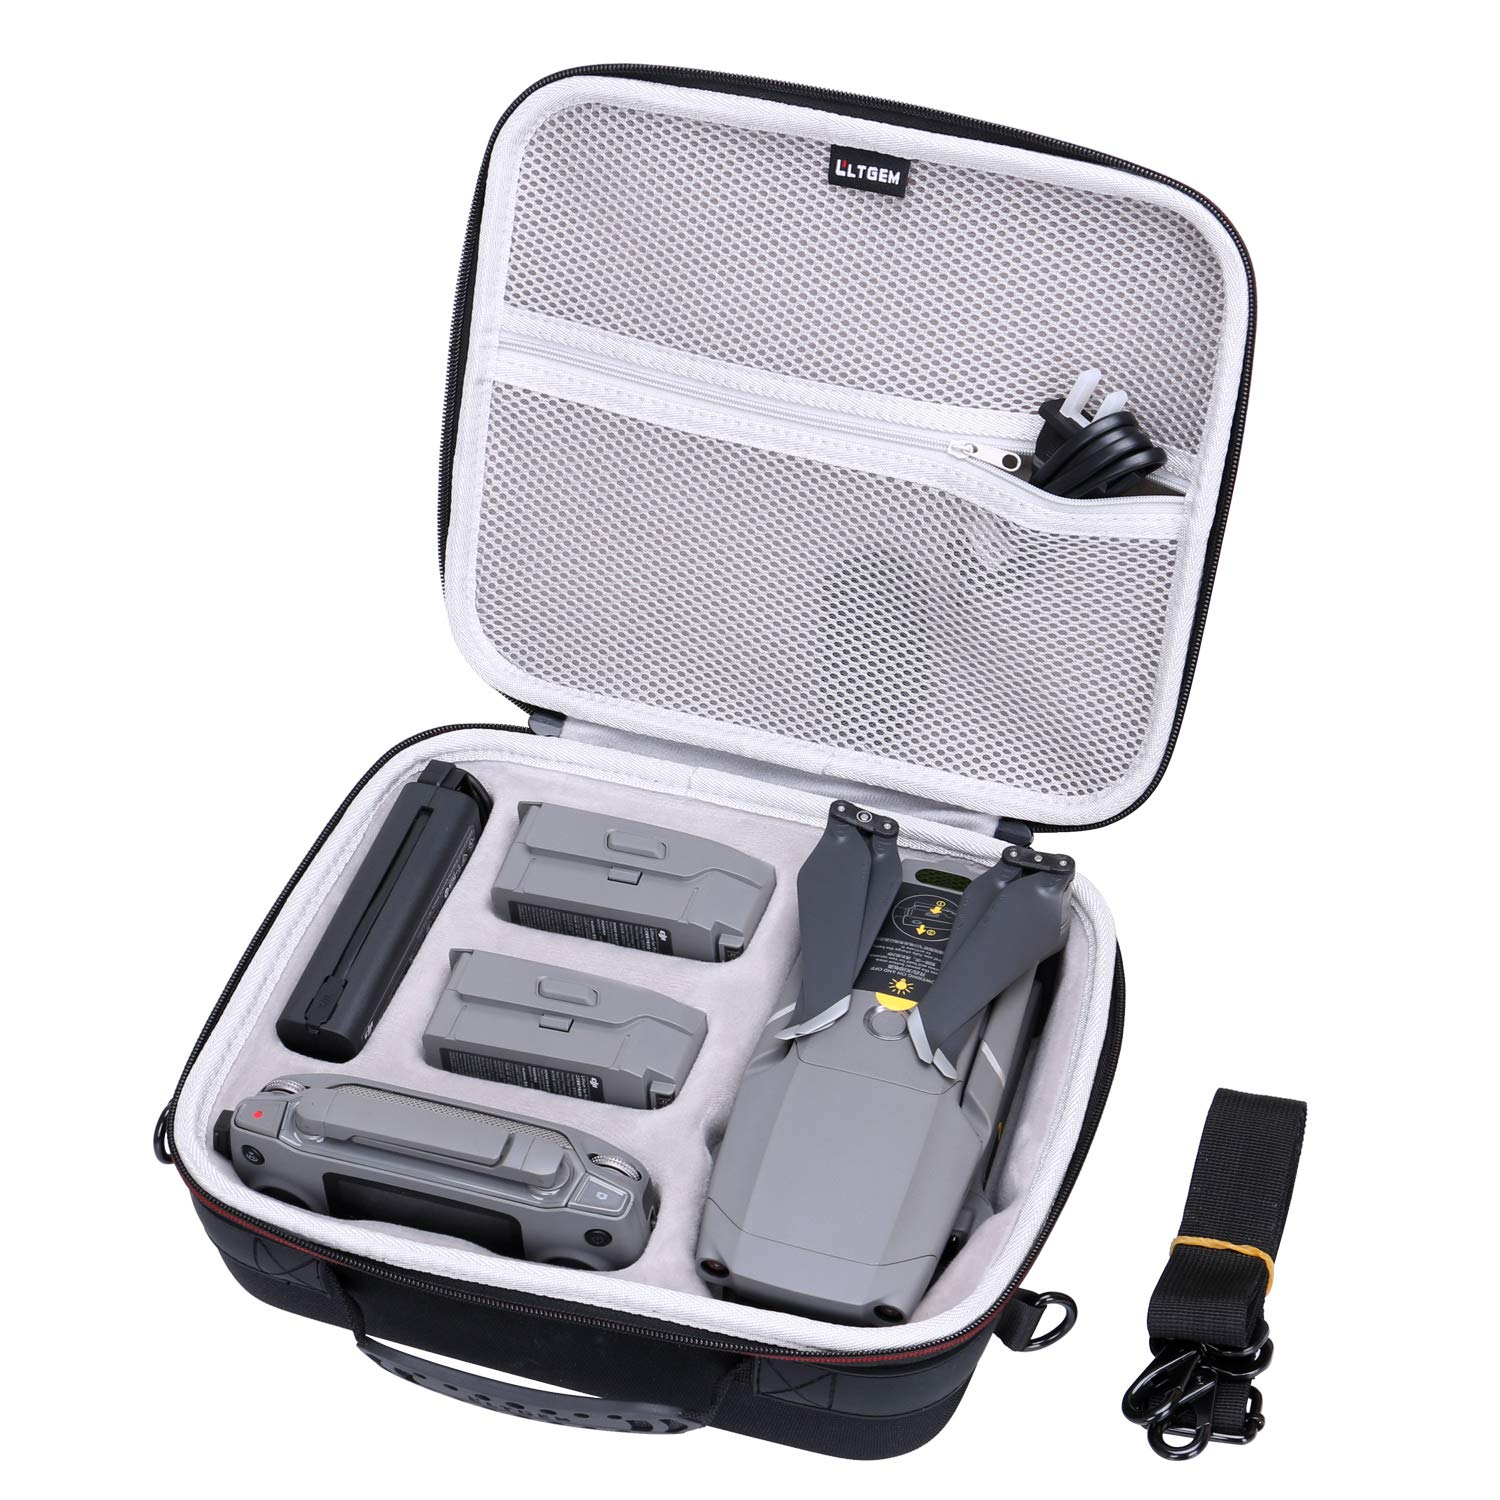 LTGEM EVA Hard Case for DJI Mavic 2 Pro Drone Quadcopter - Travel Protective Carrying Storage Bag